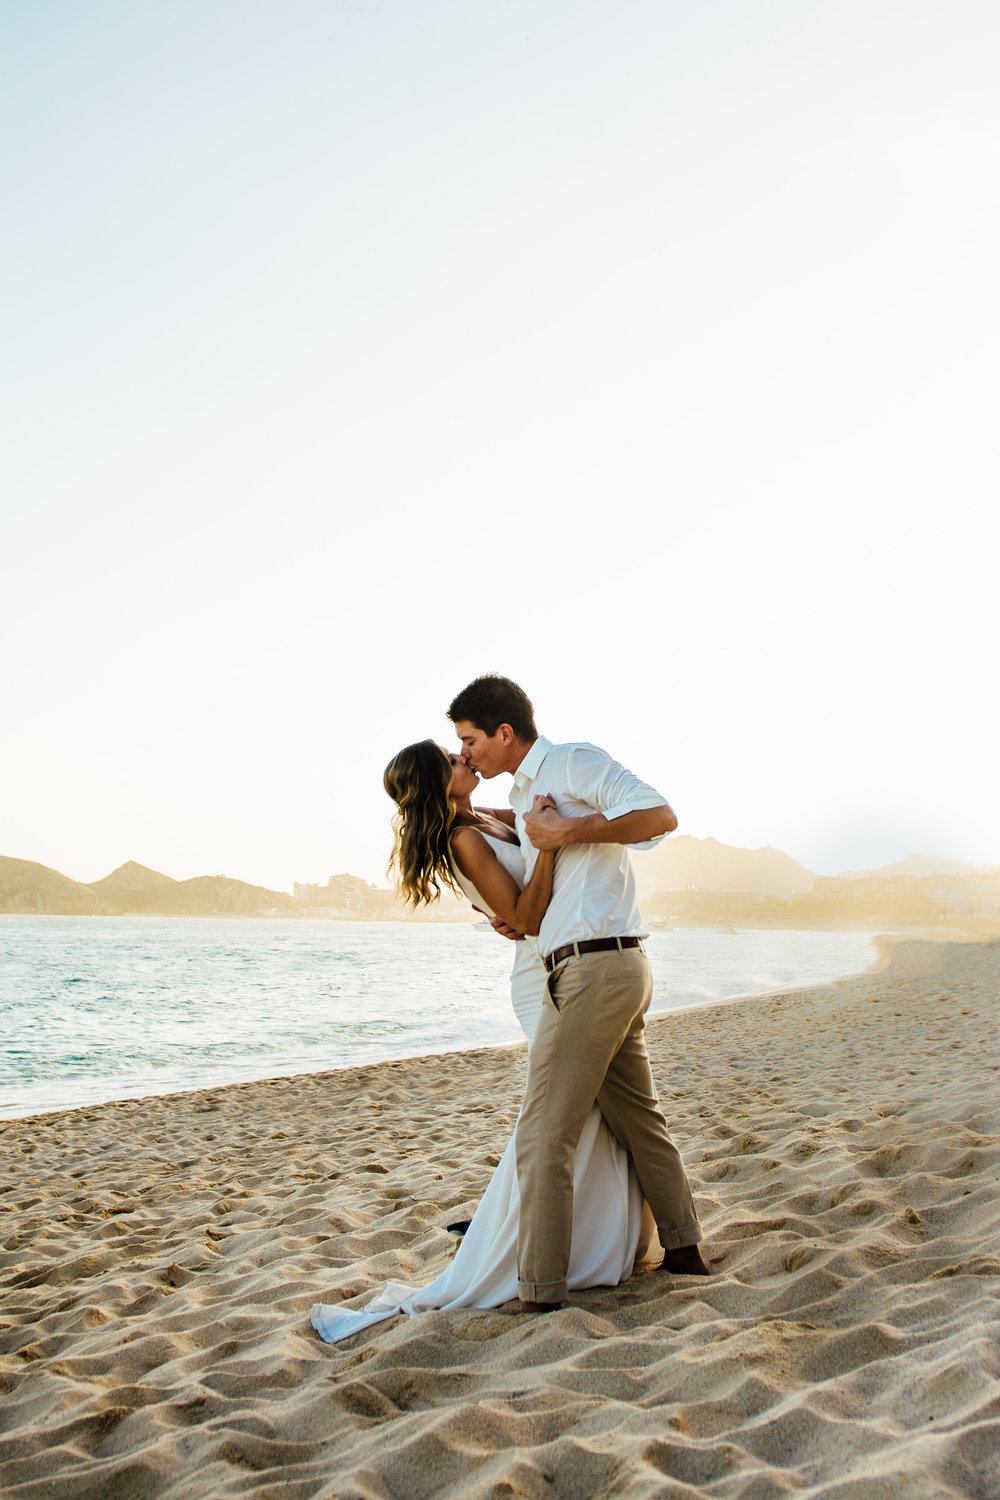 """- """"Jahni is amazing! She traveled to Cabo San Lucas for our wedding and the whole day was seamless because of her preparedness and professionalism. Beyond being a professional she is extremely helpful with anything she can do. She is full of energy and smiles the whole day.""""- Salena & Kelly